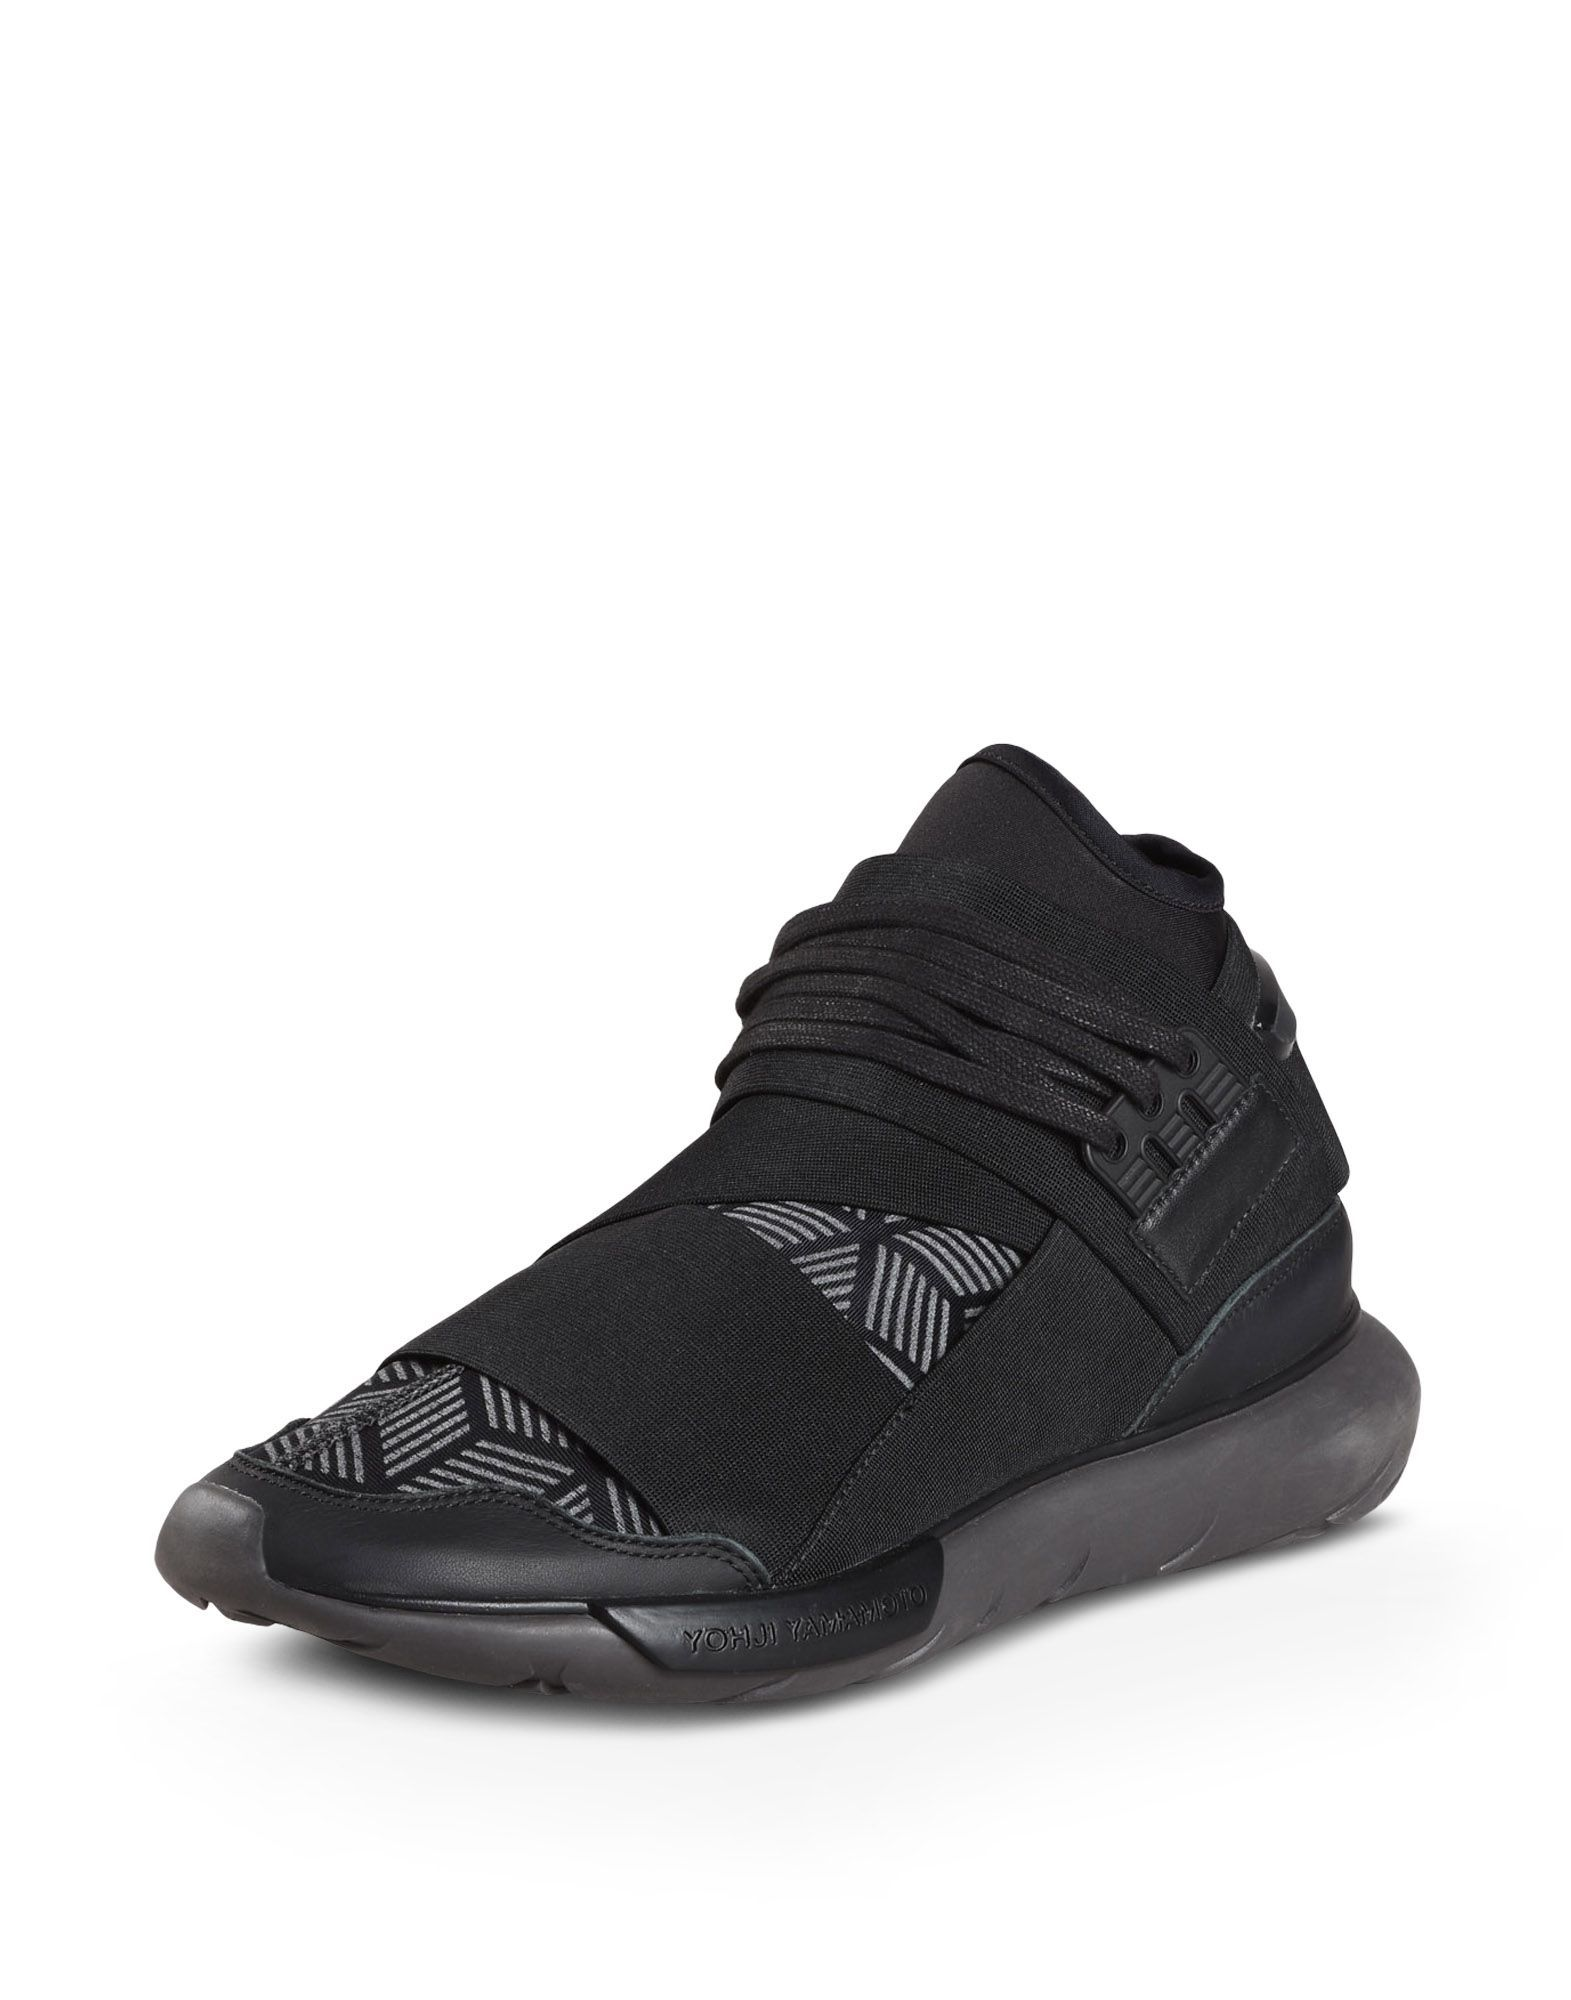 f0ccfd38fe206 Check out the Y 3 QASA HIGH Sneakers for Men and order today on the official